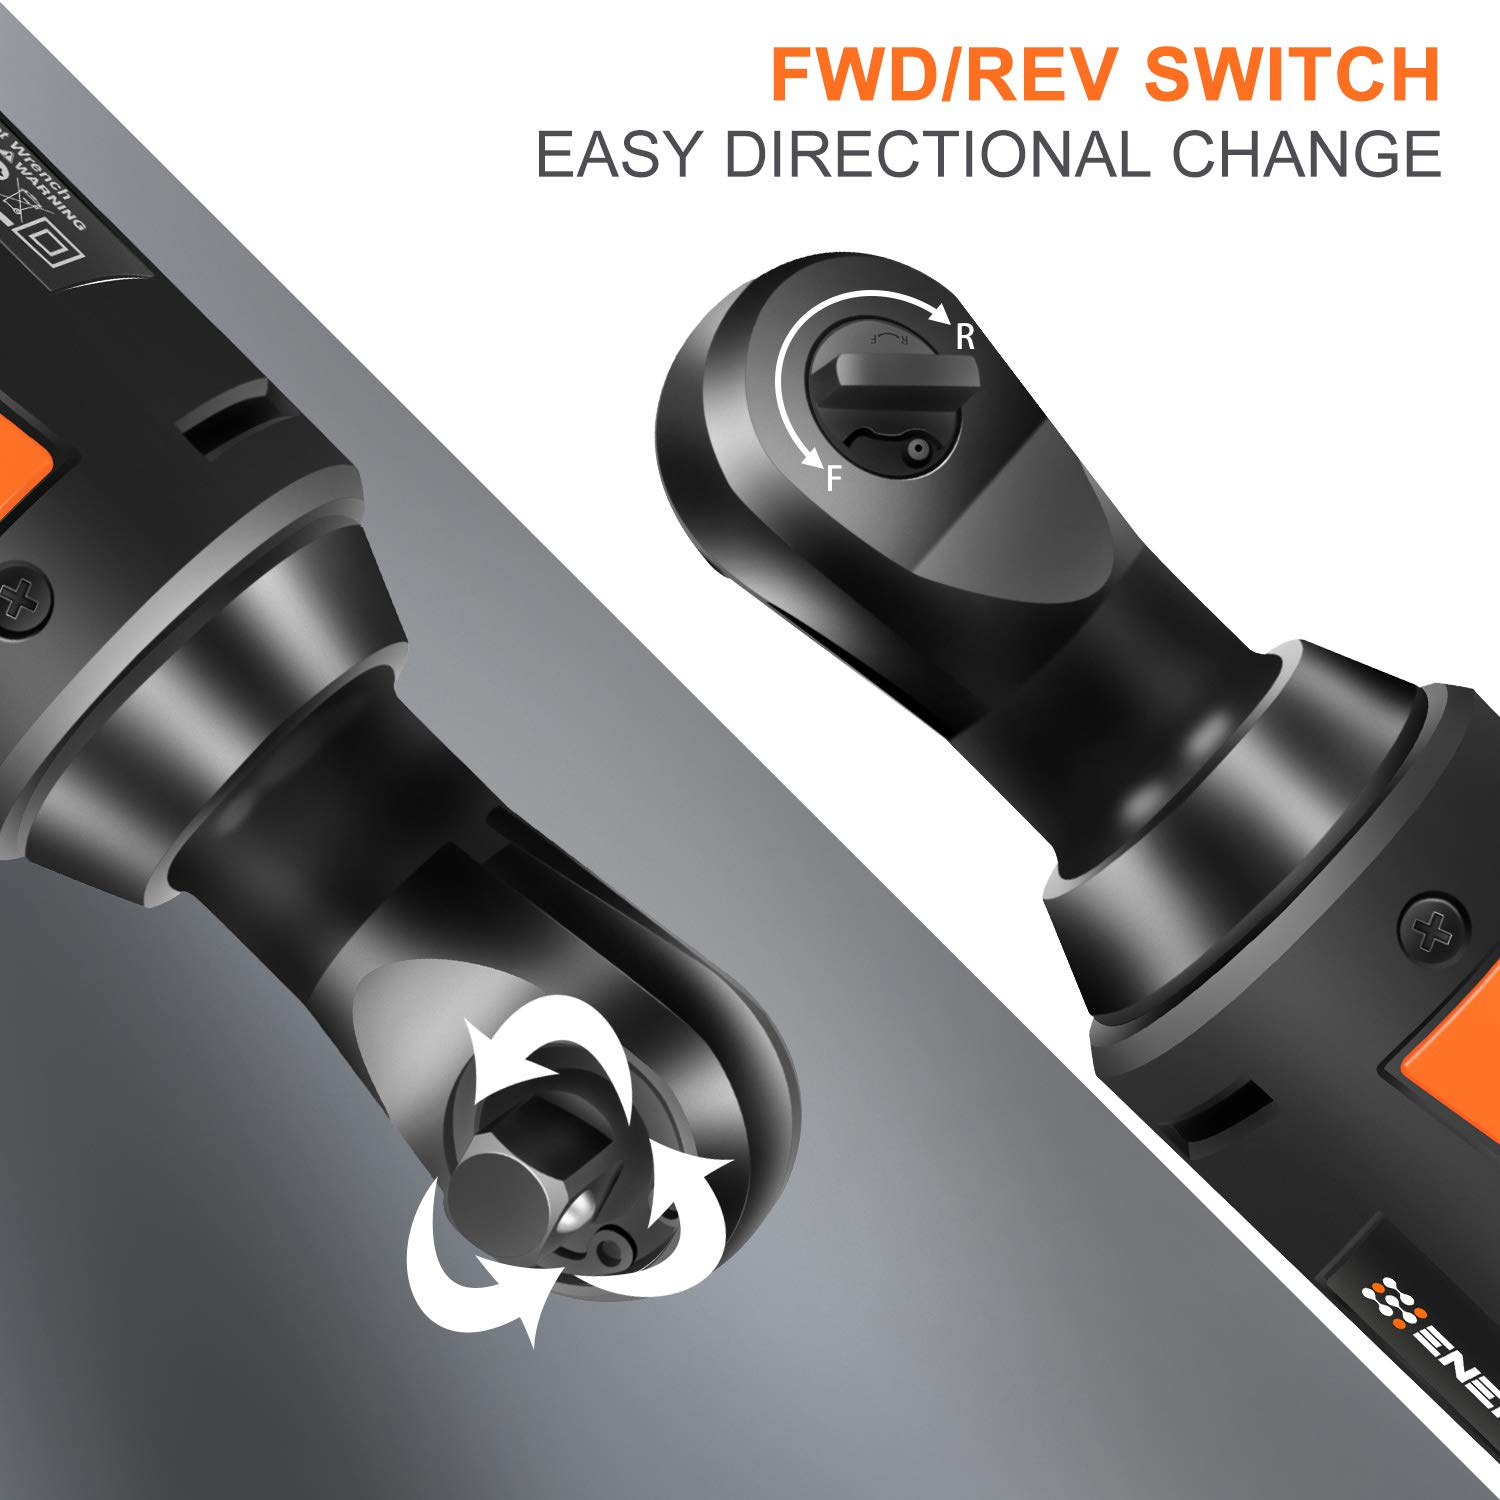 EnerTwist Cordless Electric Ratchet Wrench 3/8 Inch with 12V Lithium-ion Battery and Fast Charger Includes 7-Piece 3/8'' Metric Sockets Kit and 1/4'' Adaptor, ET-RW-12 by ENERTWIST (Image #4)